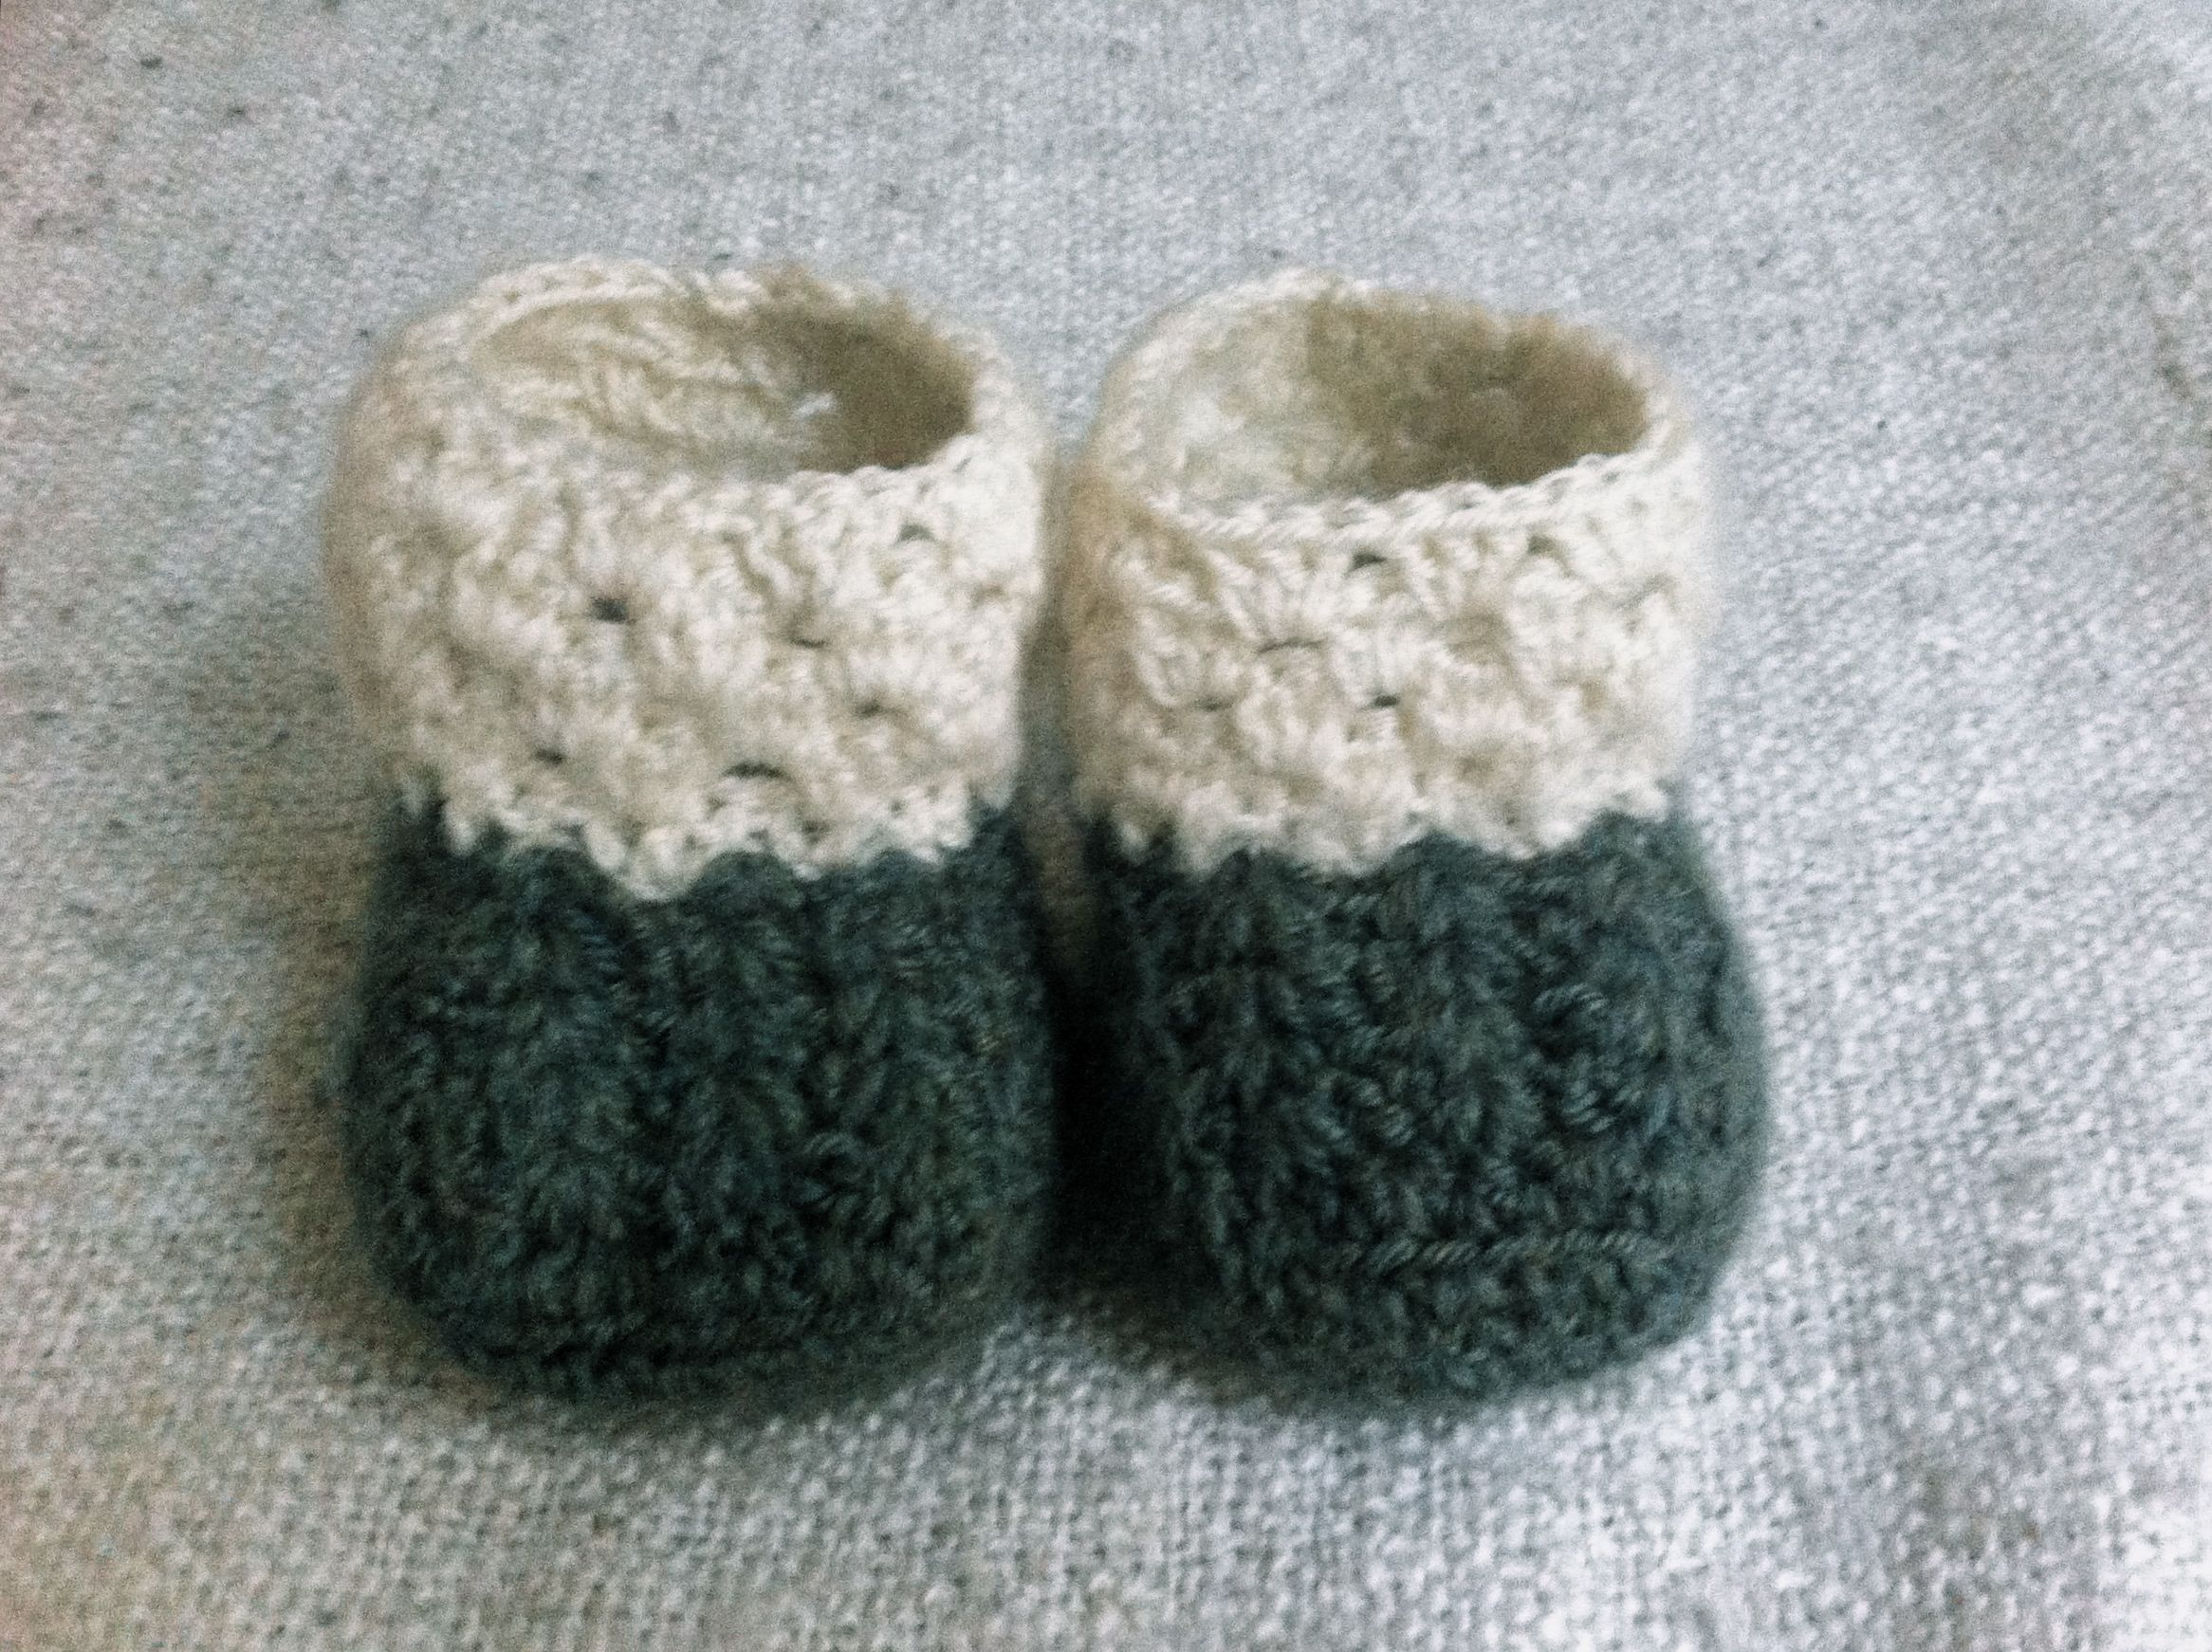 Crochet baby socks handmade by anise